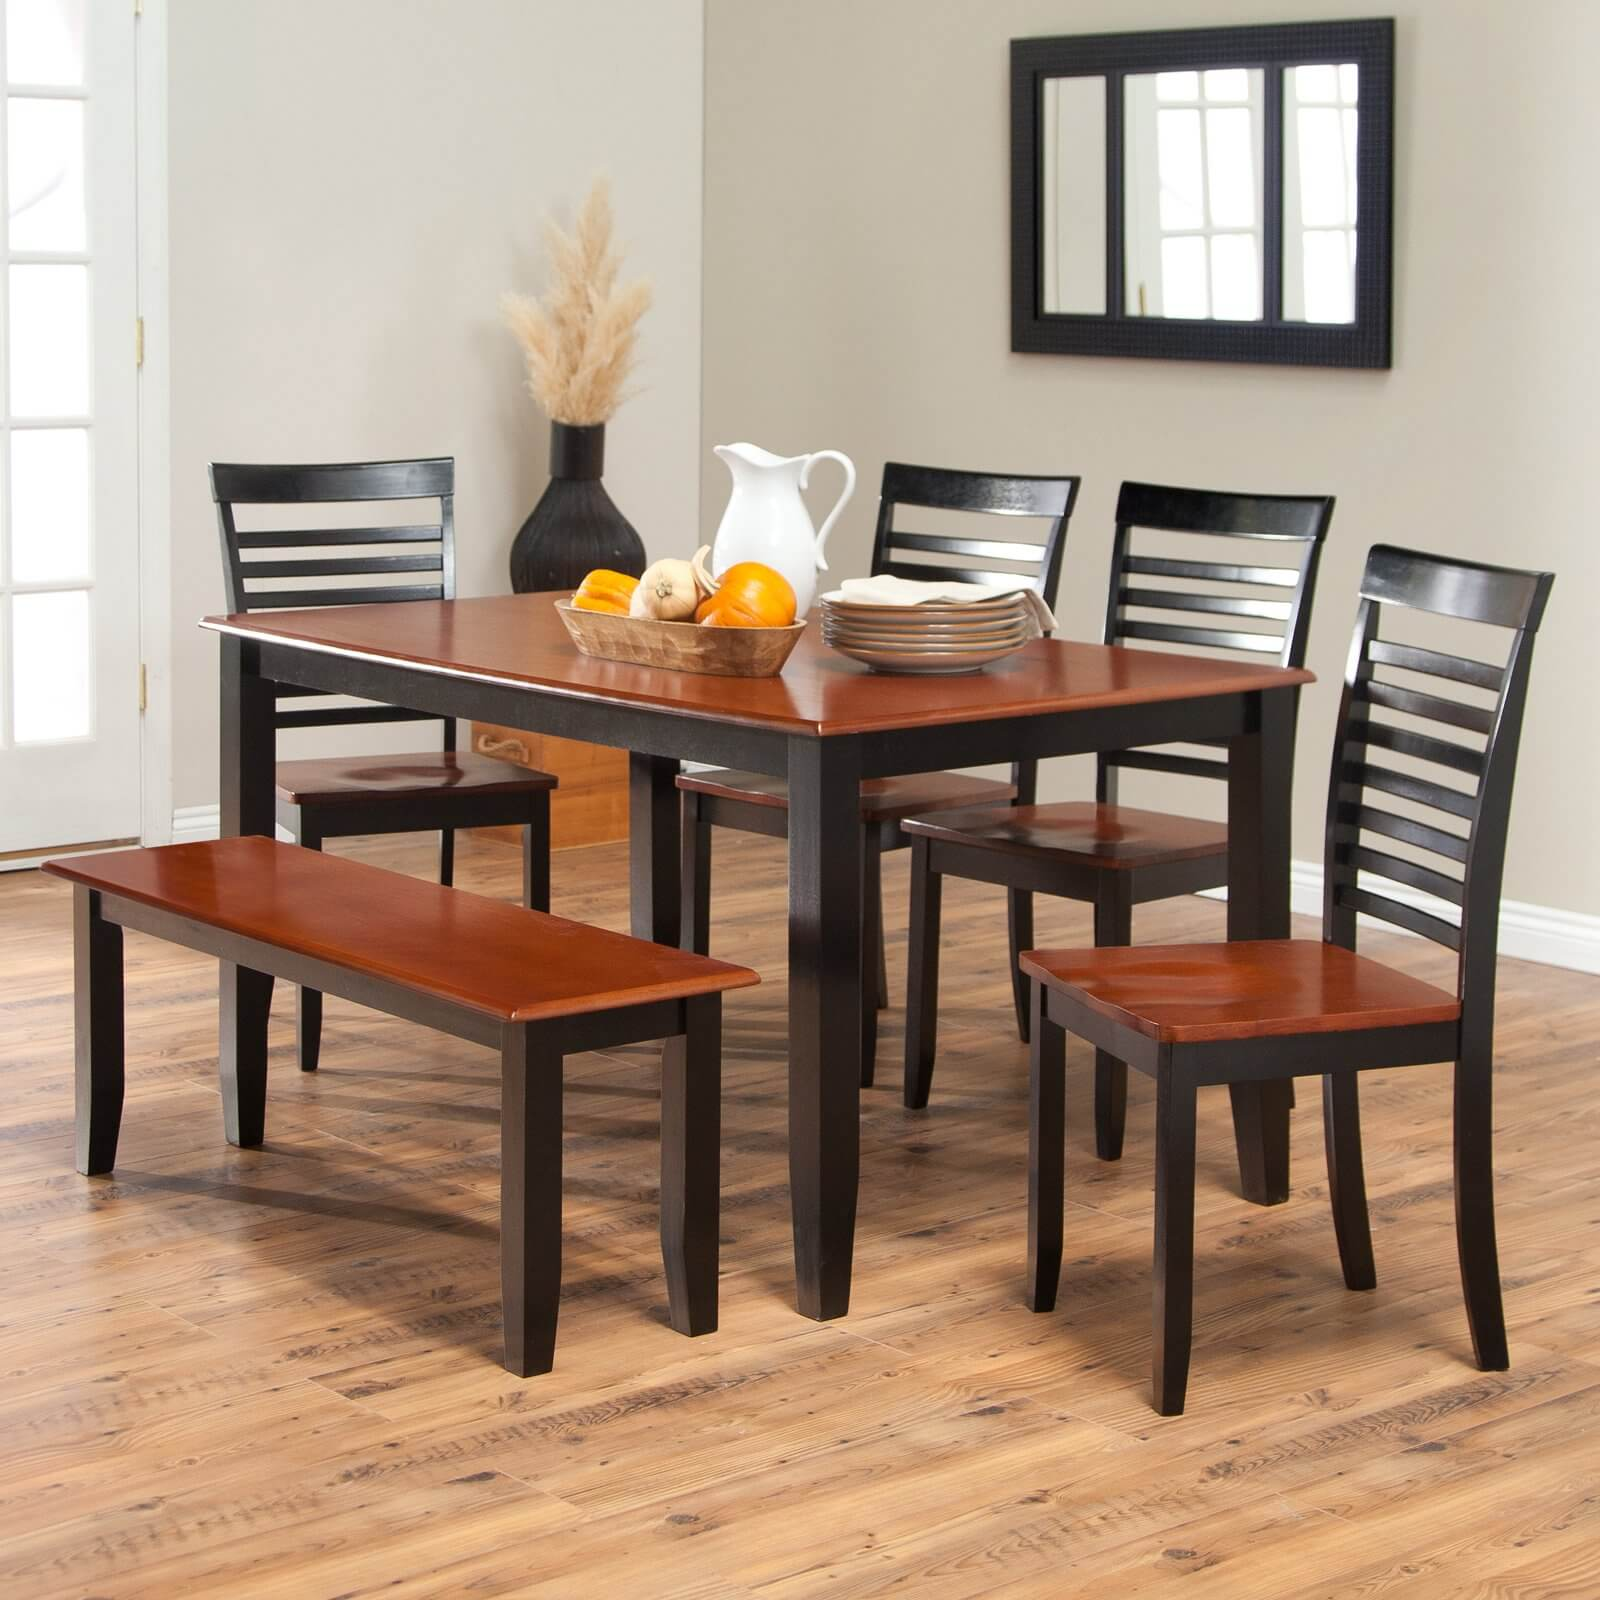 dining room sets bench seating kitchen tables sets Simple two toned dining set with bench The seats and table top are cherry